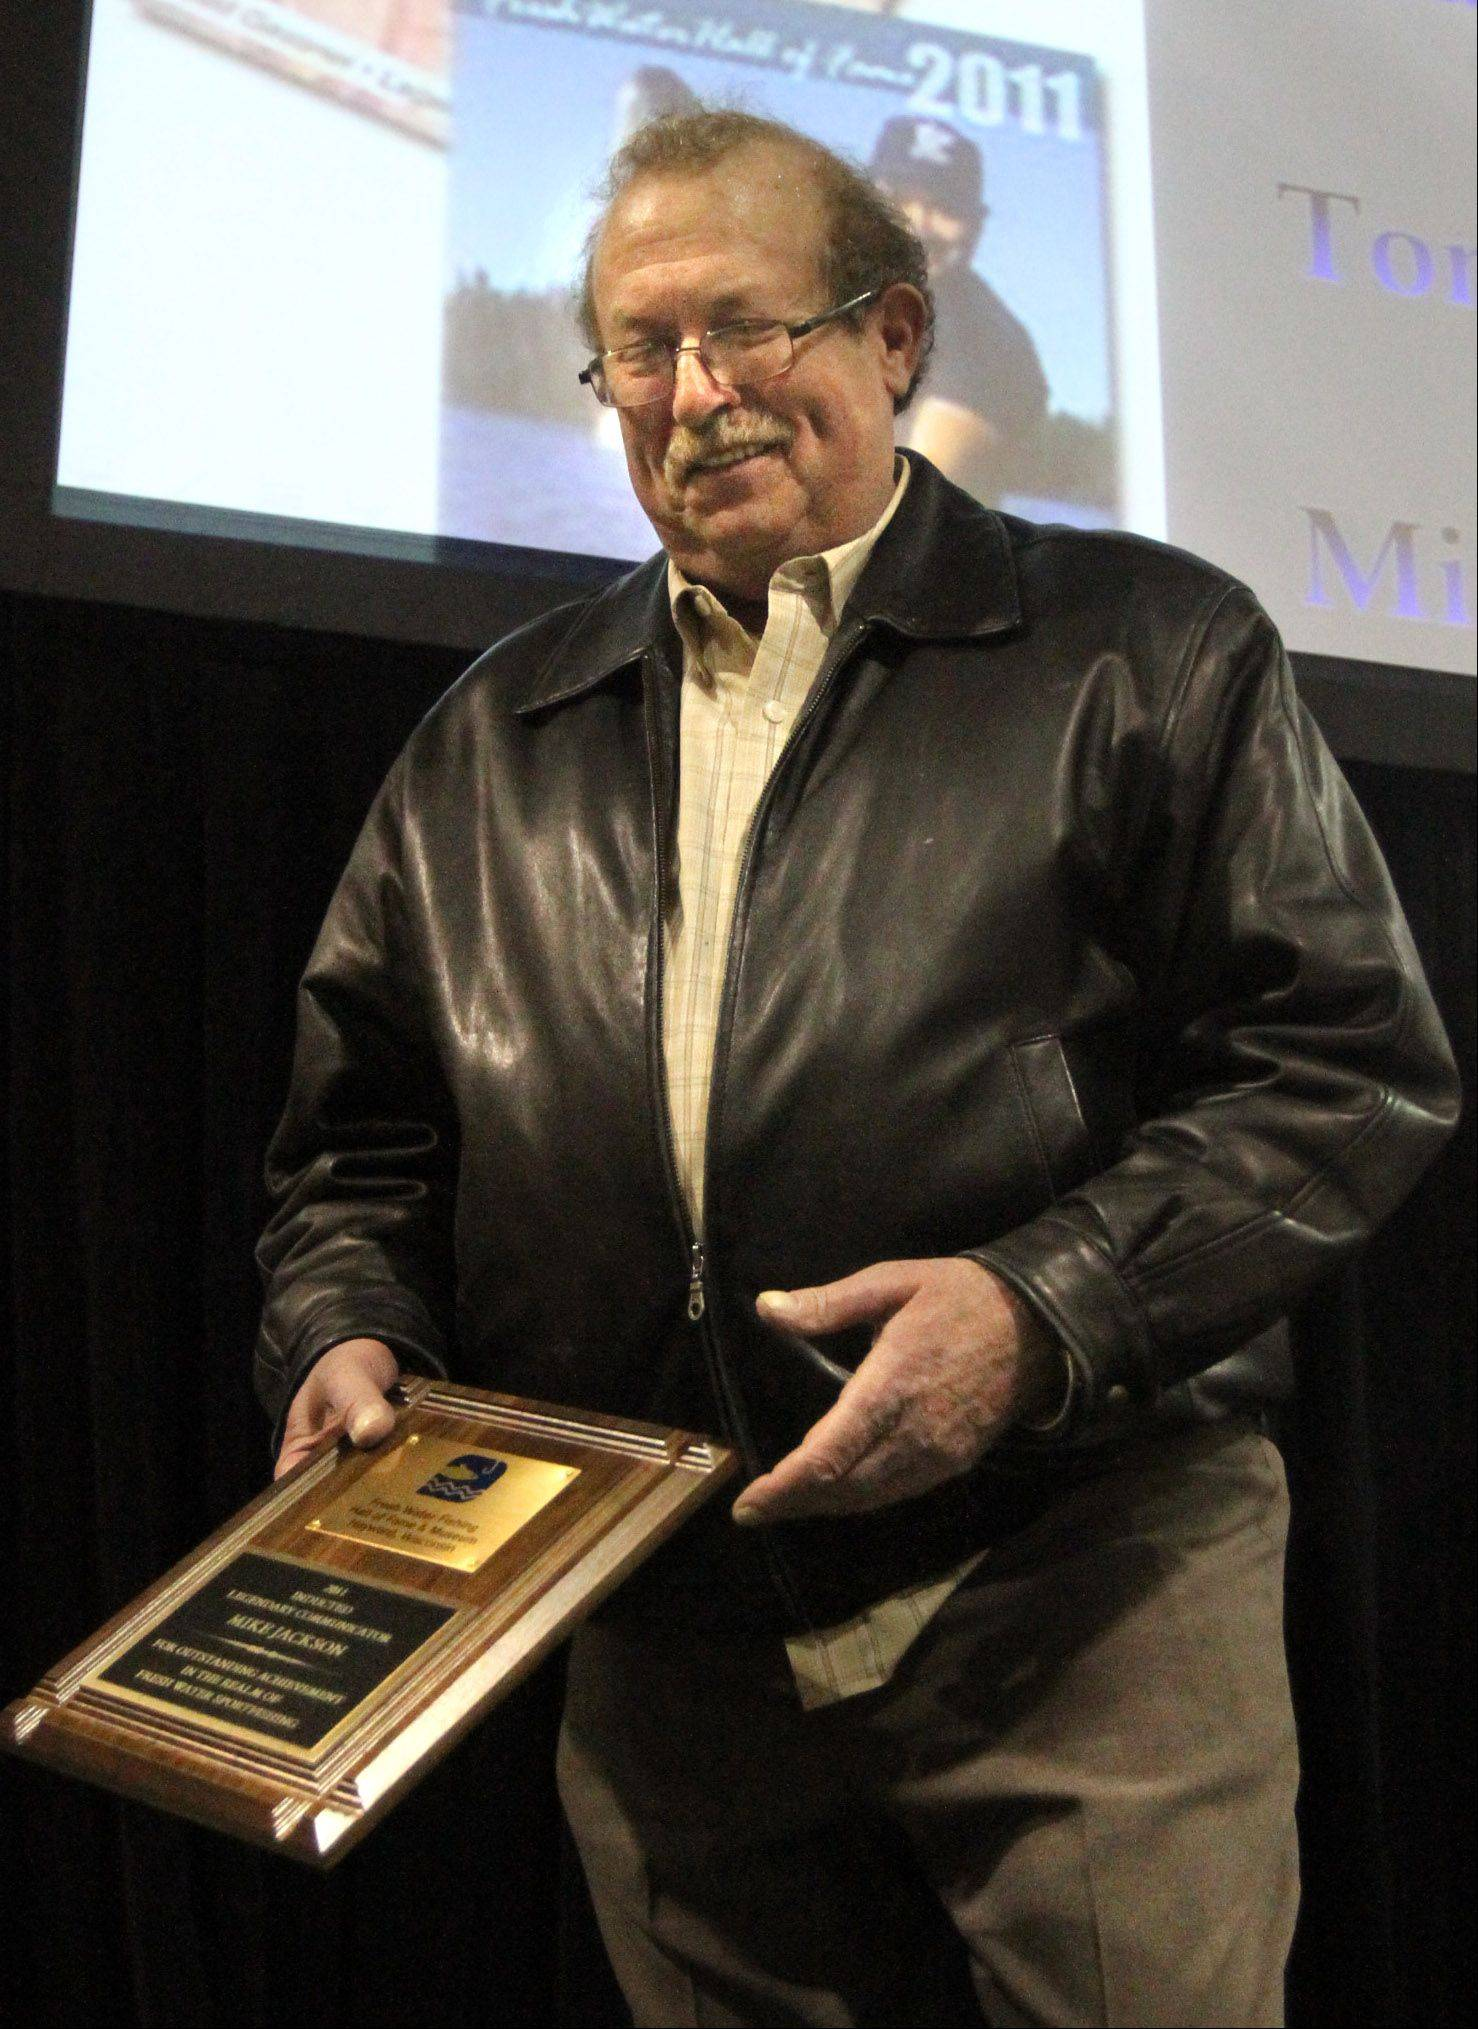 Daily Herald outdoors columnist Mike Jackson, who was inducted into Freshwater Fishing Hall of Fame at the America's Outdoor Show in Rosemont last January, will be sitting out the fall hunting and fishing season as he recovers from lung cancer surgery.